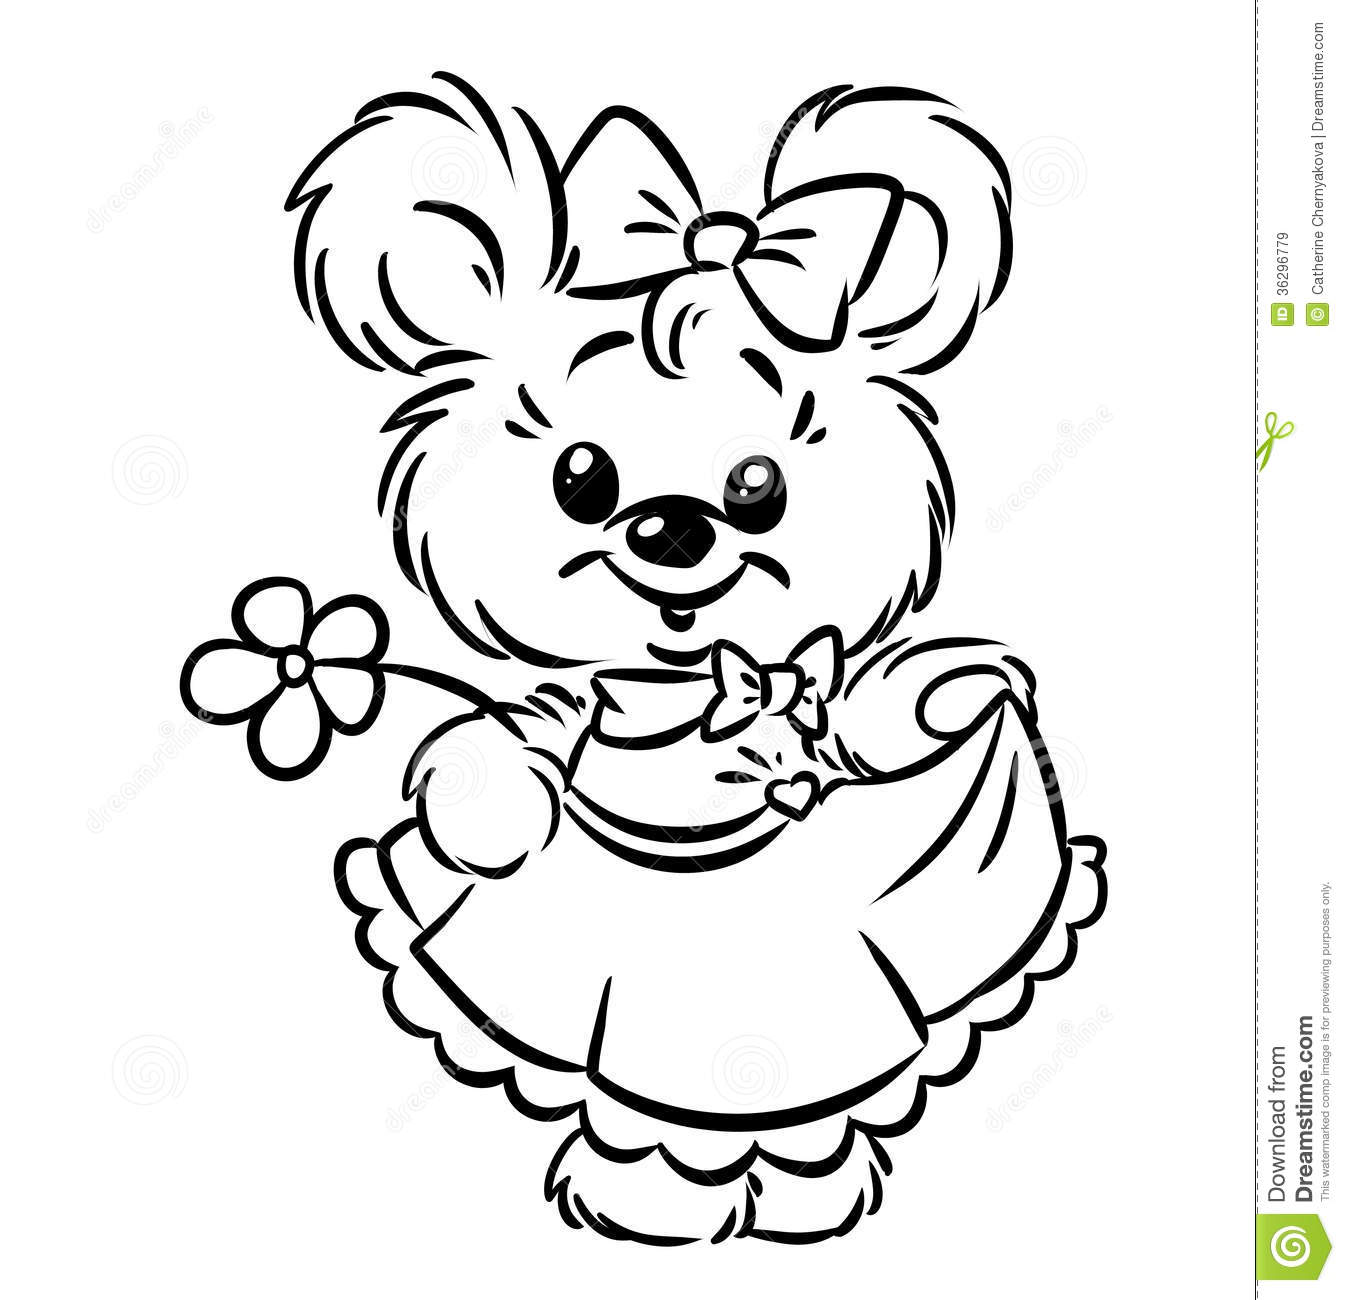 Teddy bears free coloring pages on art coloring pages - Bear Girl Flower Coloring Pages Royalty Free Stock Images